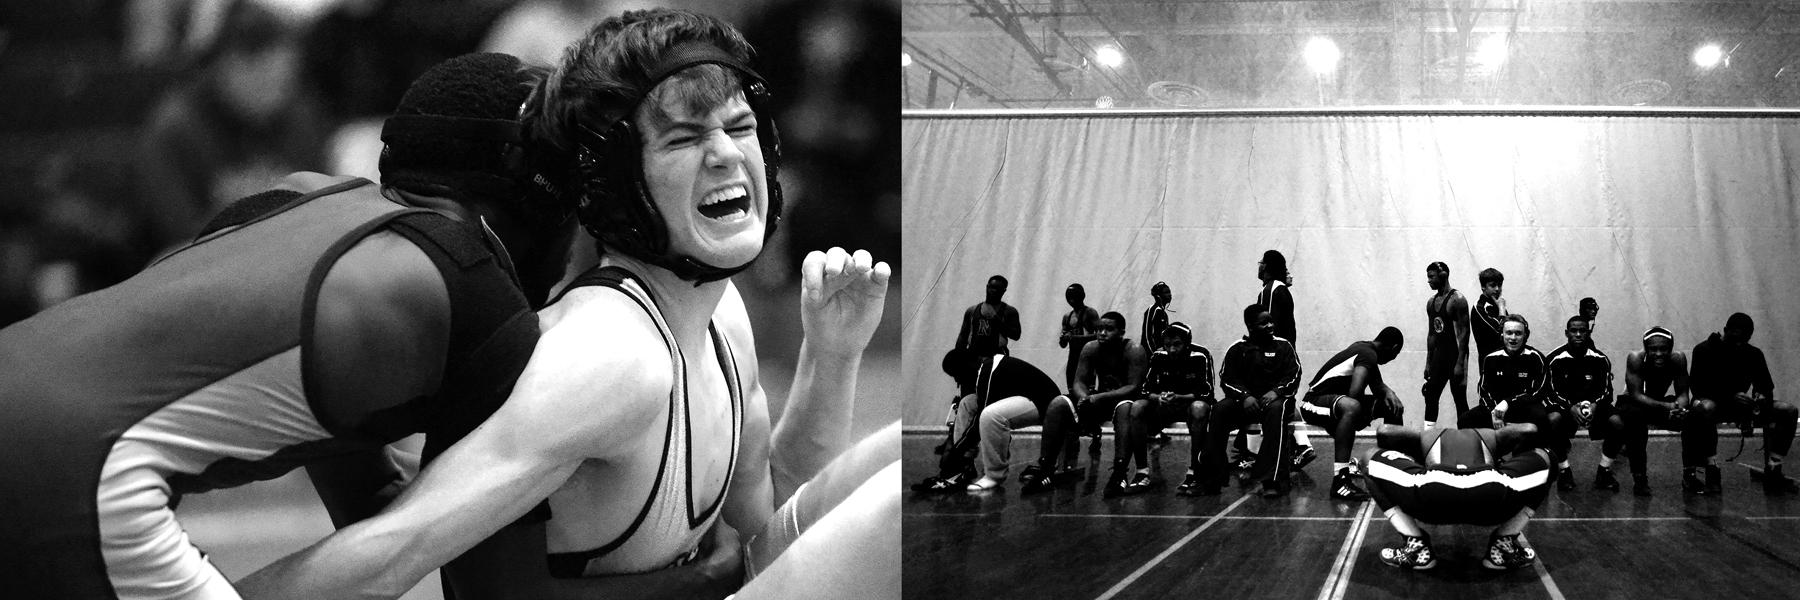 Left image: Ben Hogan, right, of Western Tech yells in pain during his match against Darrius Davanport, left, of New Town on Dec. 12, 2013 in Owings Mills, Md.  Right Image: New Town High School waits for their match against Western Tech High School to begin on Dec. 12, 2013 in Owings Mills, Md.